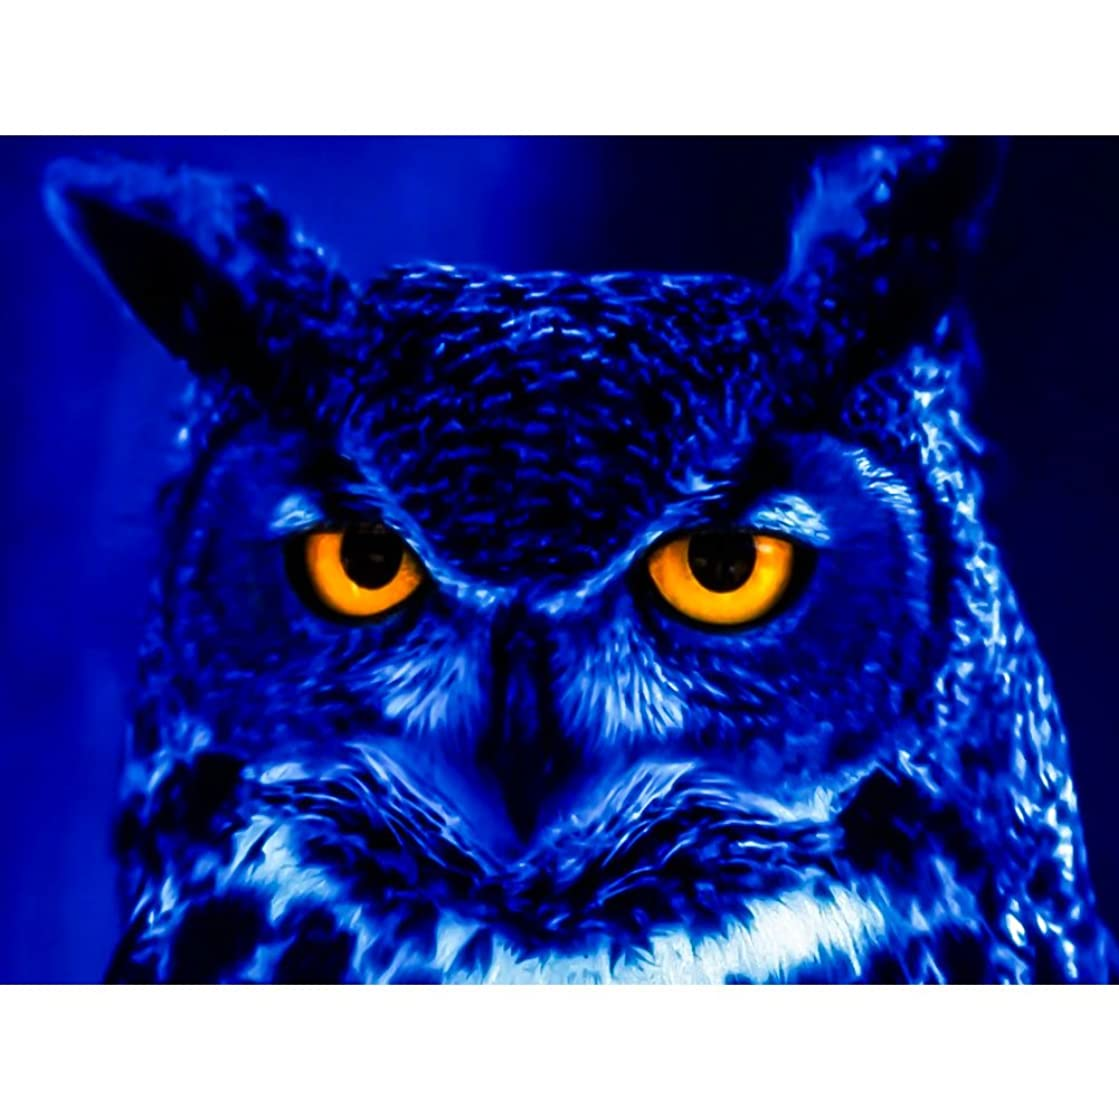 UPMALL DIY 5D Diamond Painting by Number Kits, Full Drill Crystal Rhinestone Embroidery Pictures Arts Craft for Home Wall Decoration Animal Owl 15.75×11.81 inches